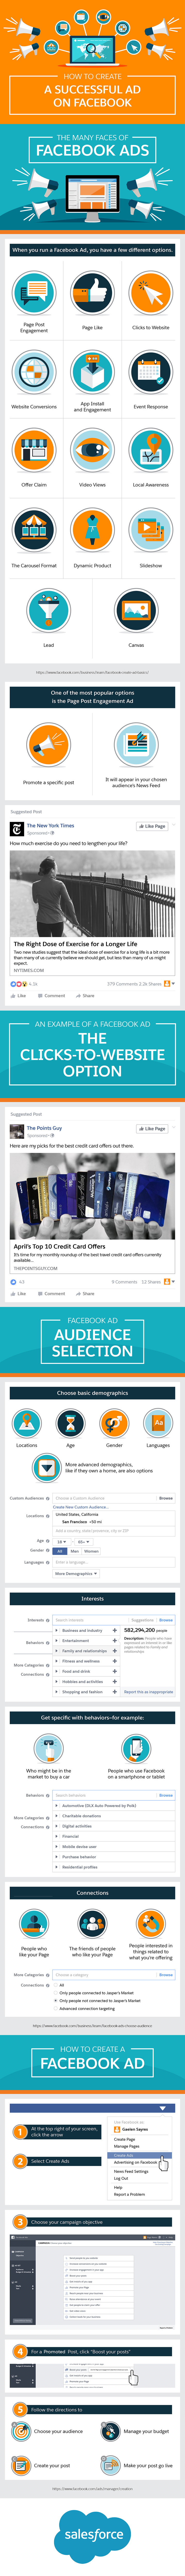 create successful ad facebook